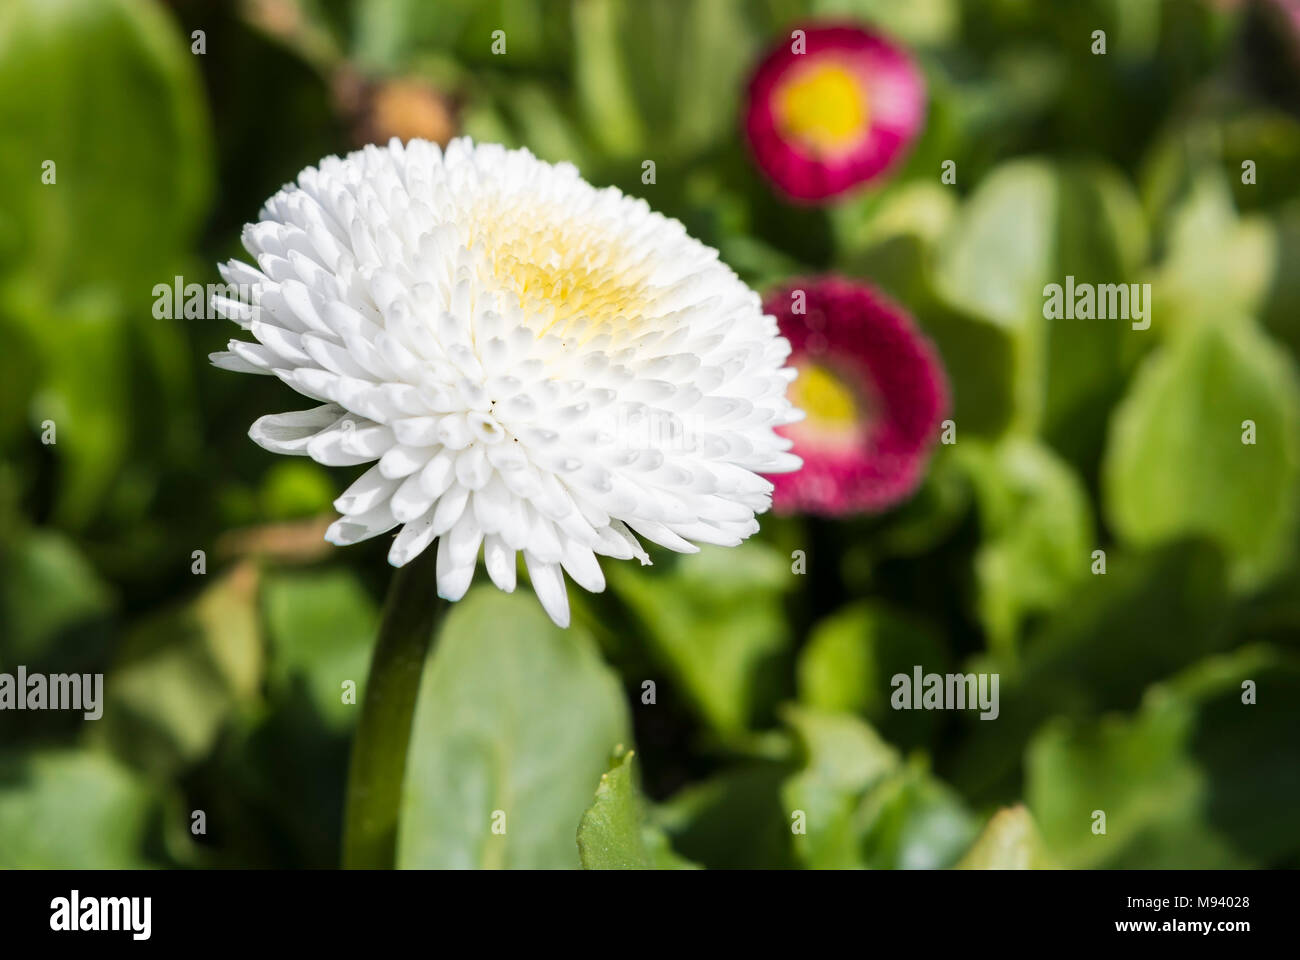 Bellis perennis, probably 'Pomponette White' from the Pomponette Series, ad English daisy growing in Spring in the UK. White Lawn Daisy. - Stock Image